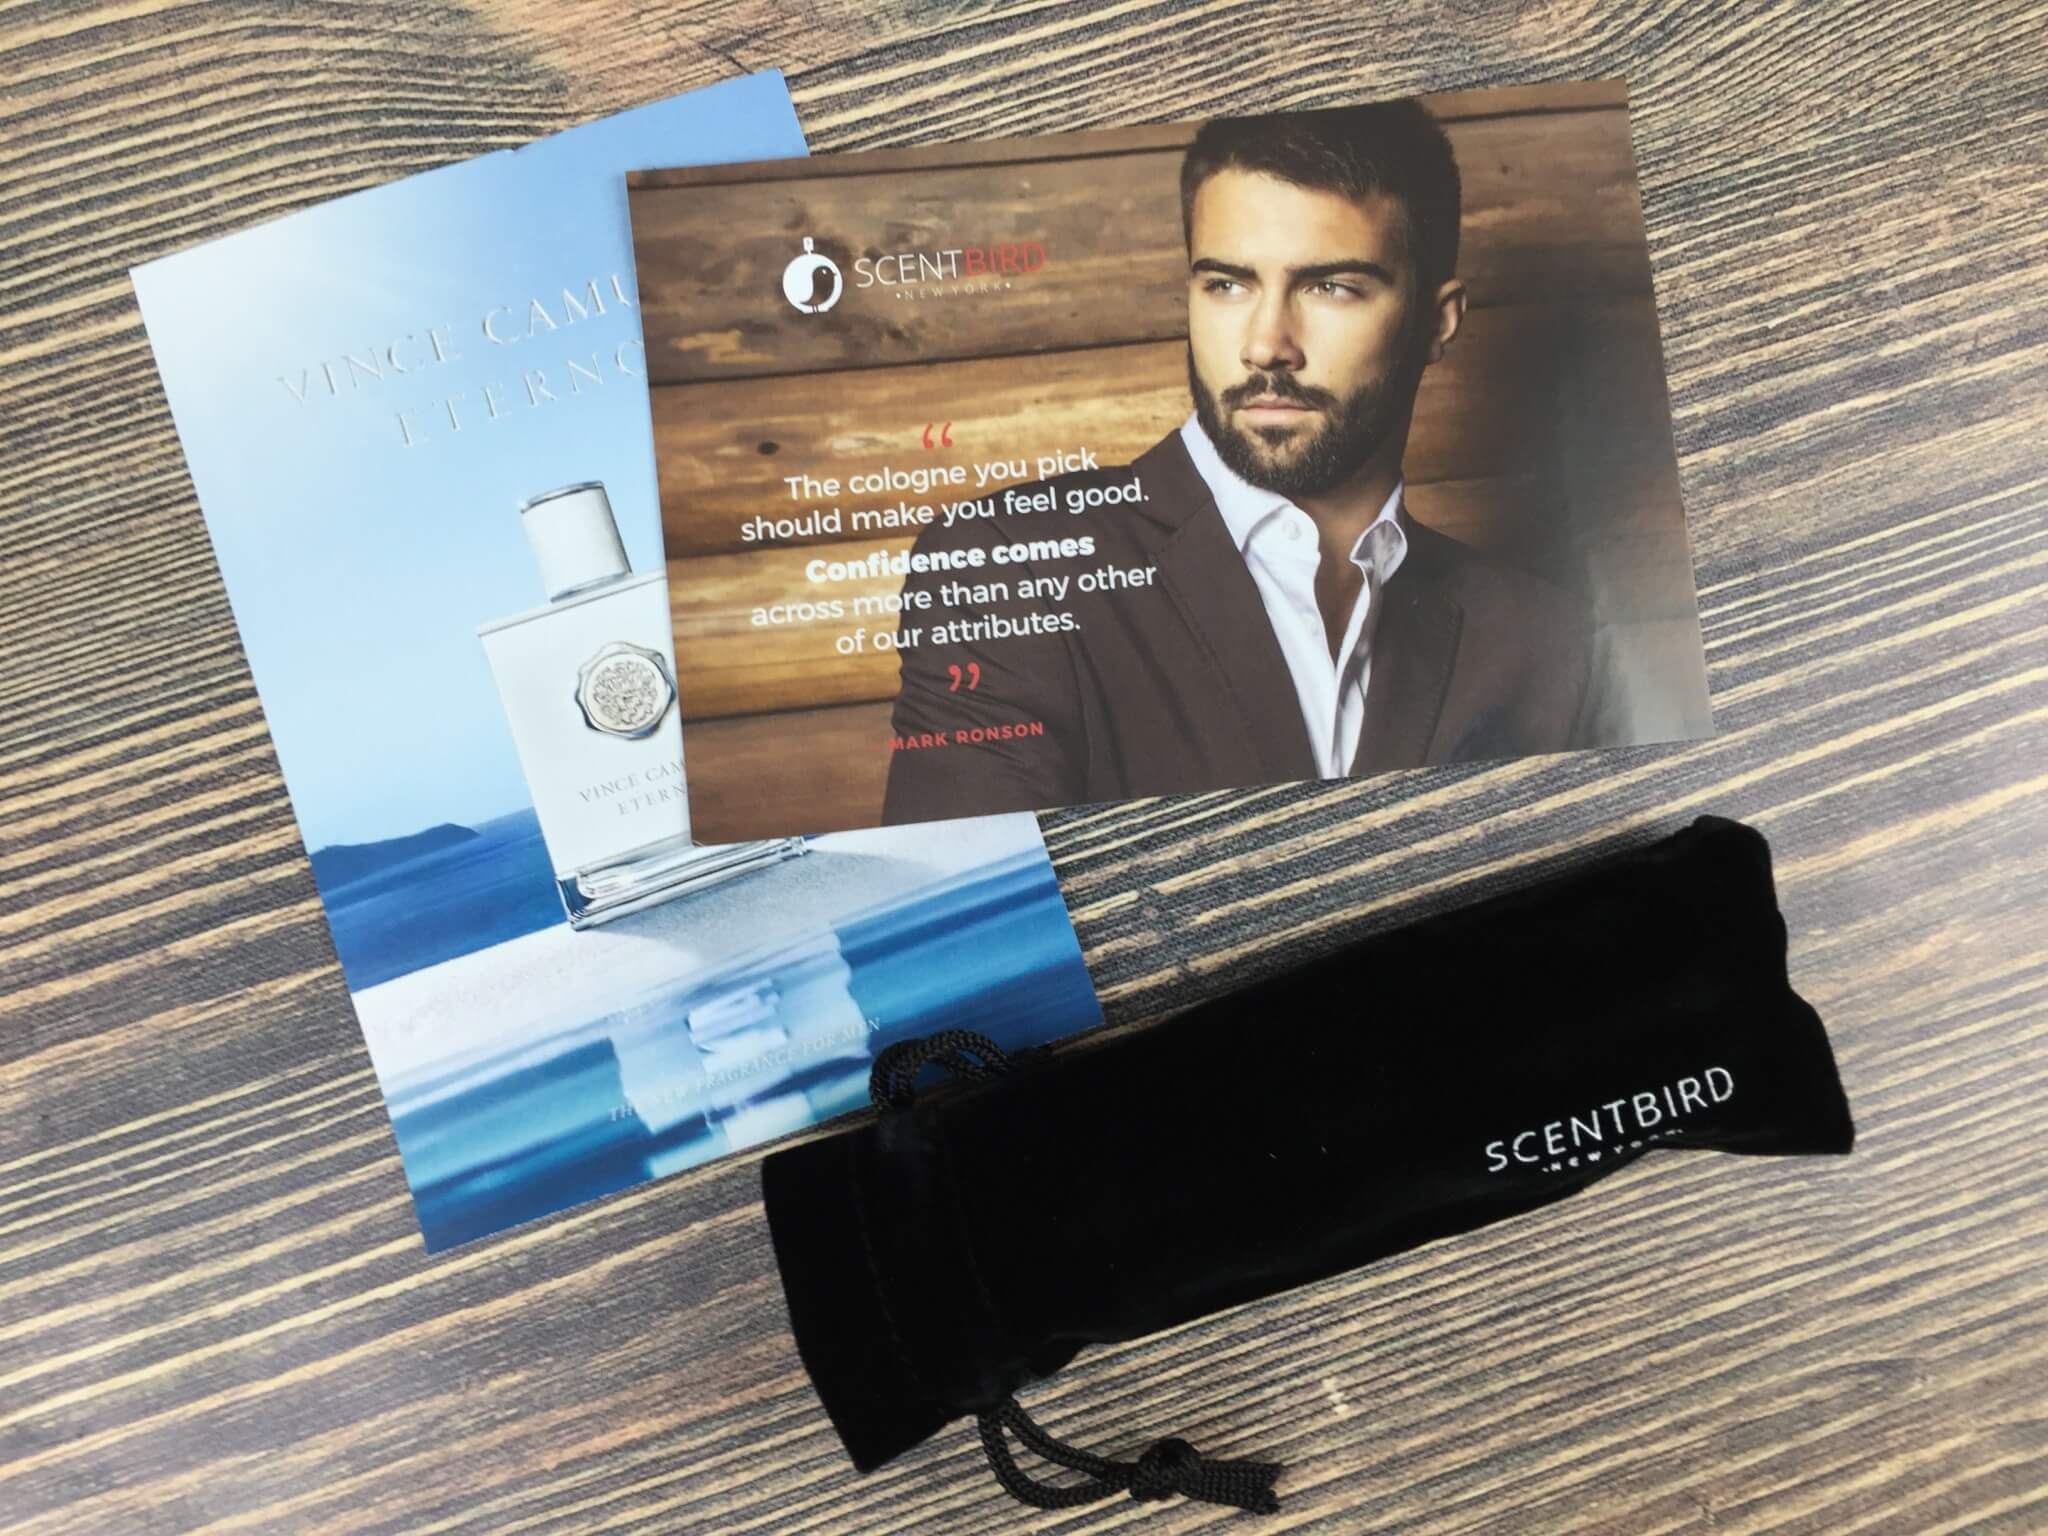 Scentbird for Men August 2016 review